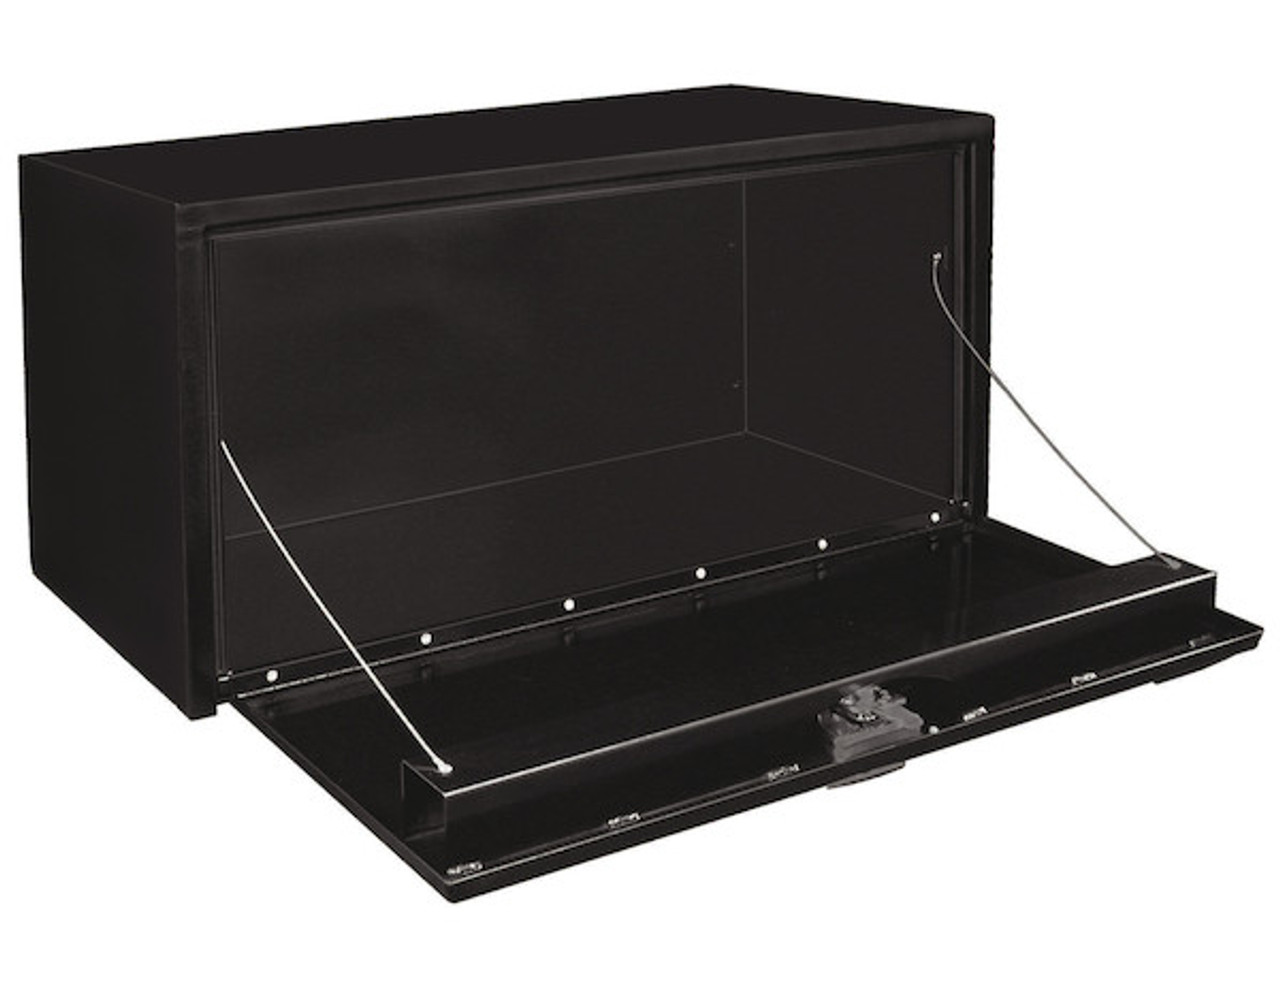 "1703305 BUYERS PRODUCTS BLACK STEEL UNDERBODY TRUCK TOOLBOX WITH T-LATCH 14""HX16""DX36""W"